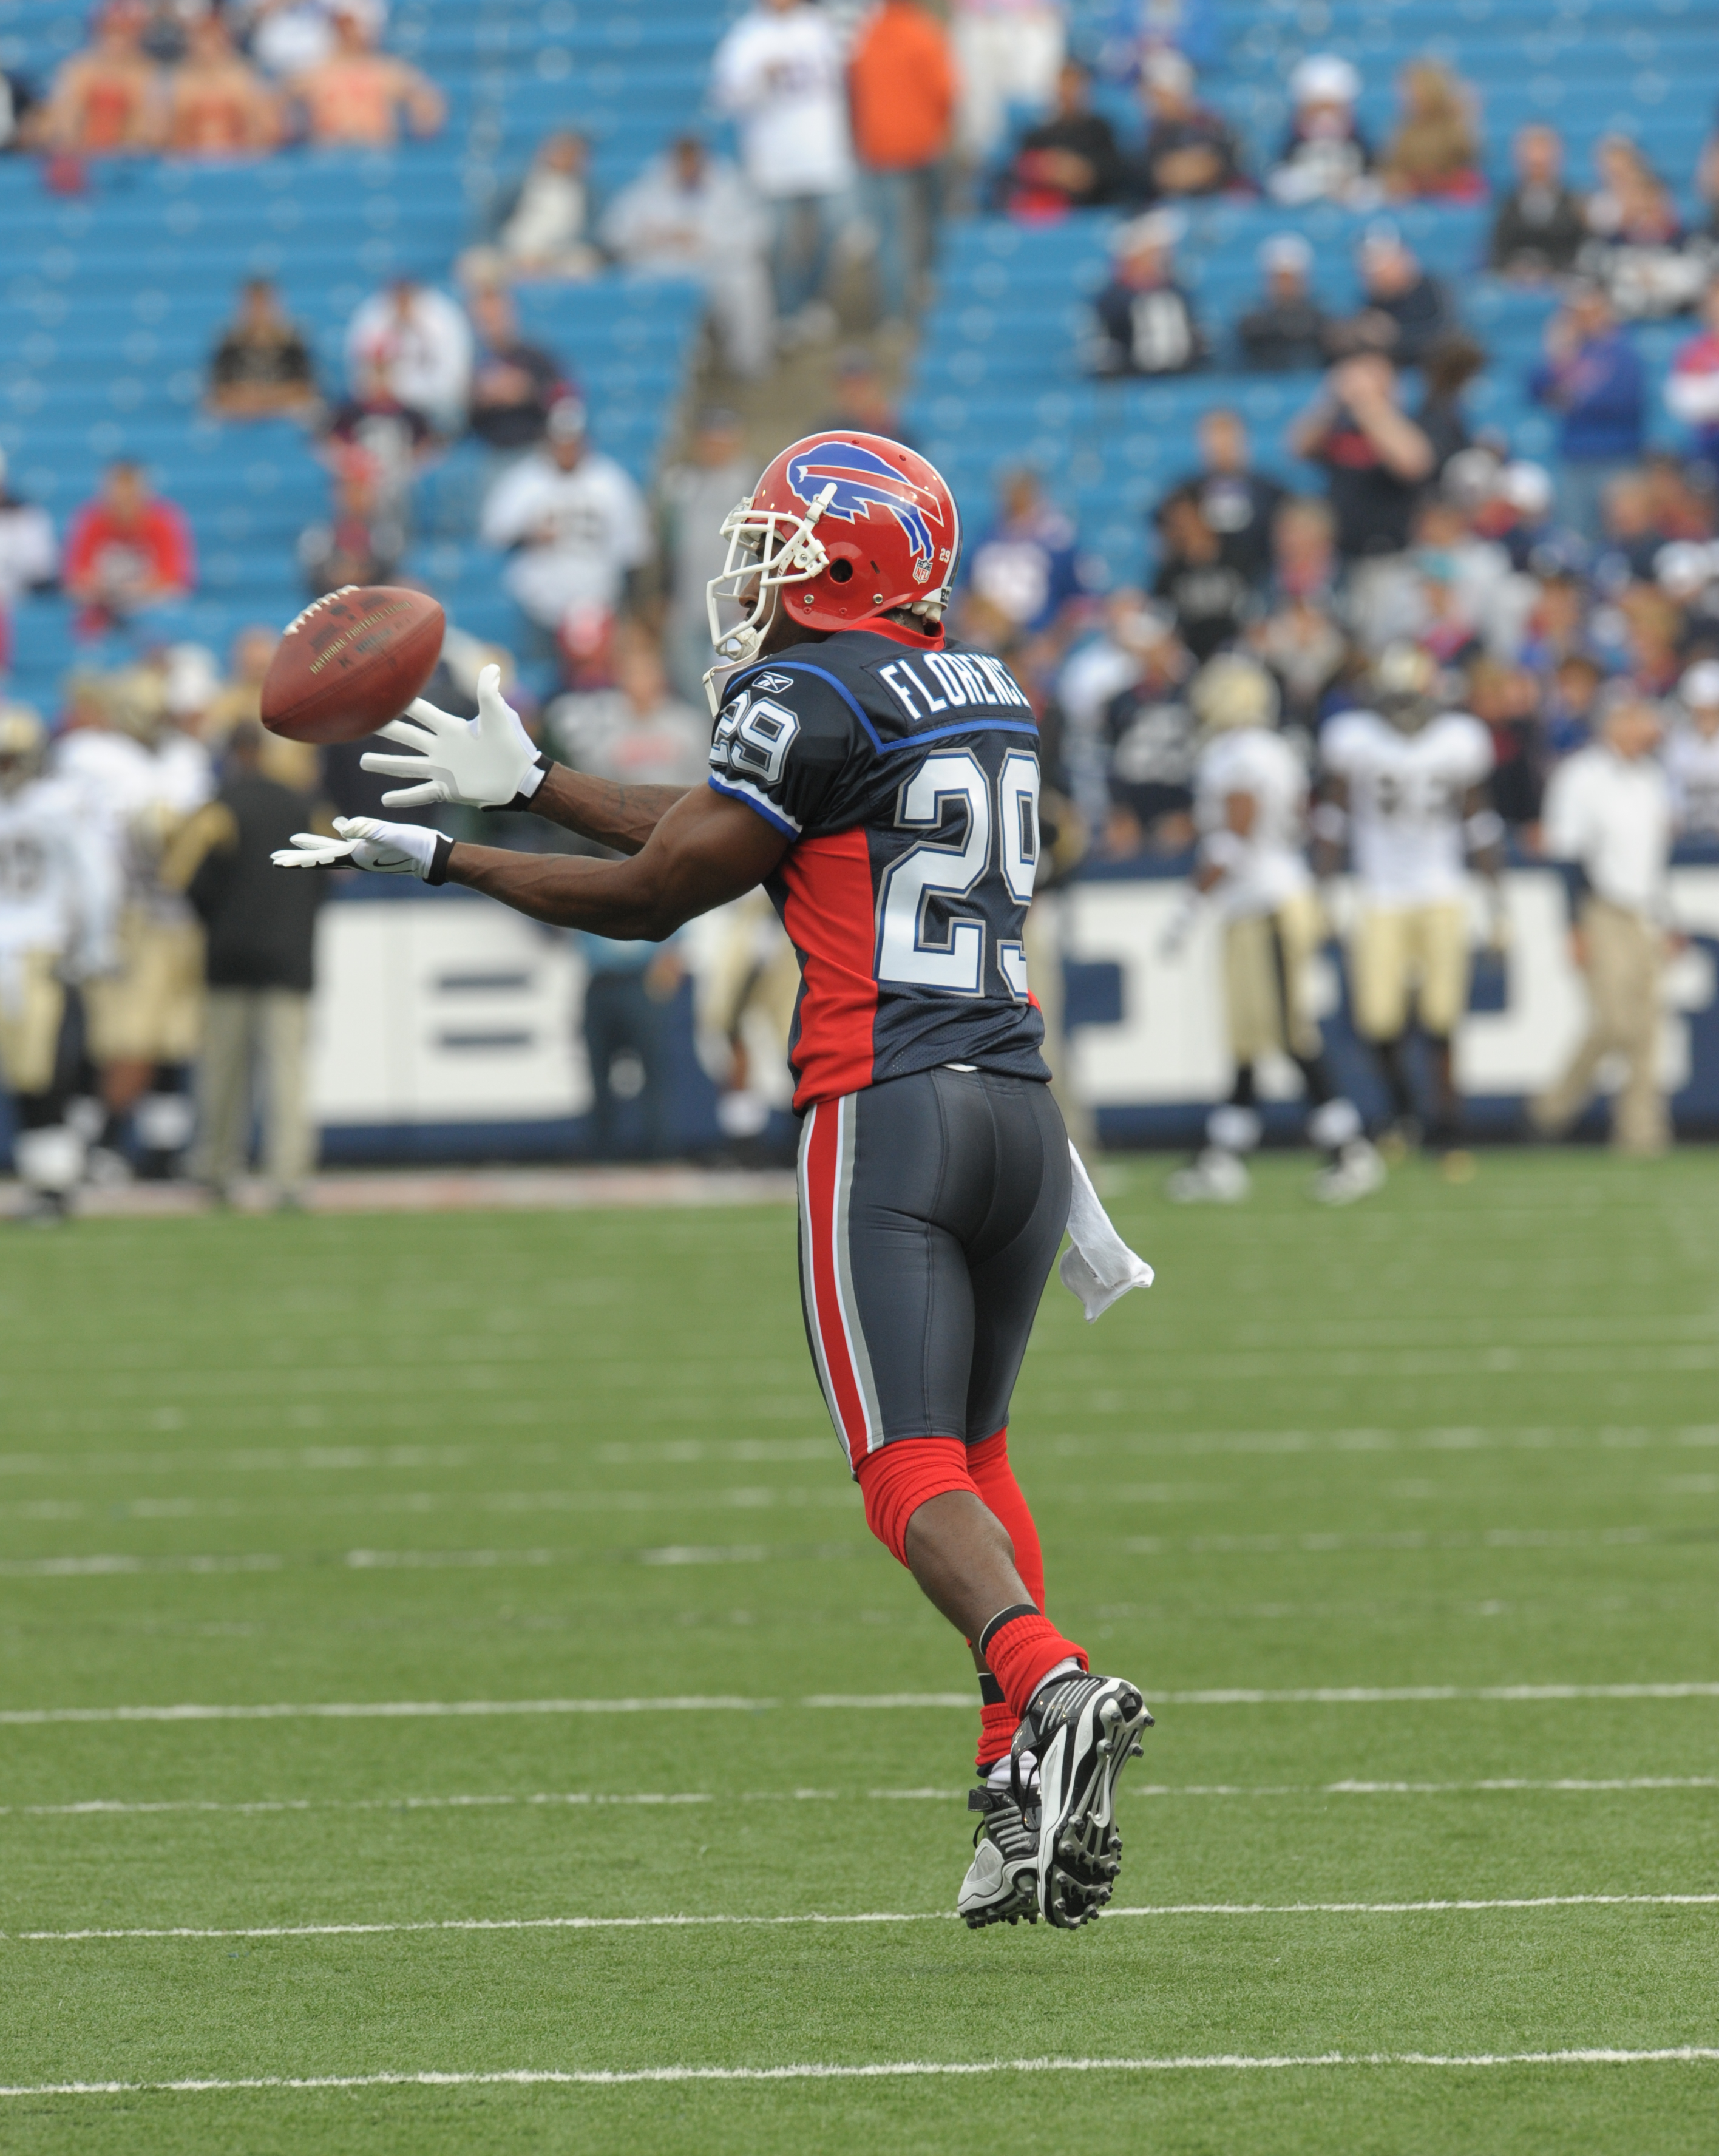 Drayton Florence Retires From Nfl Graduates From Unf